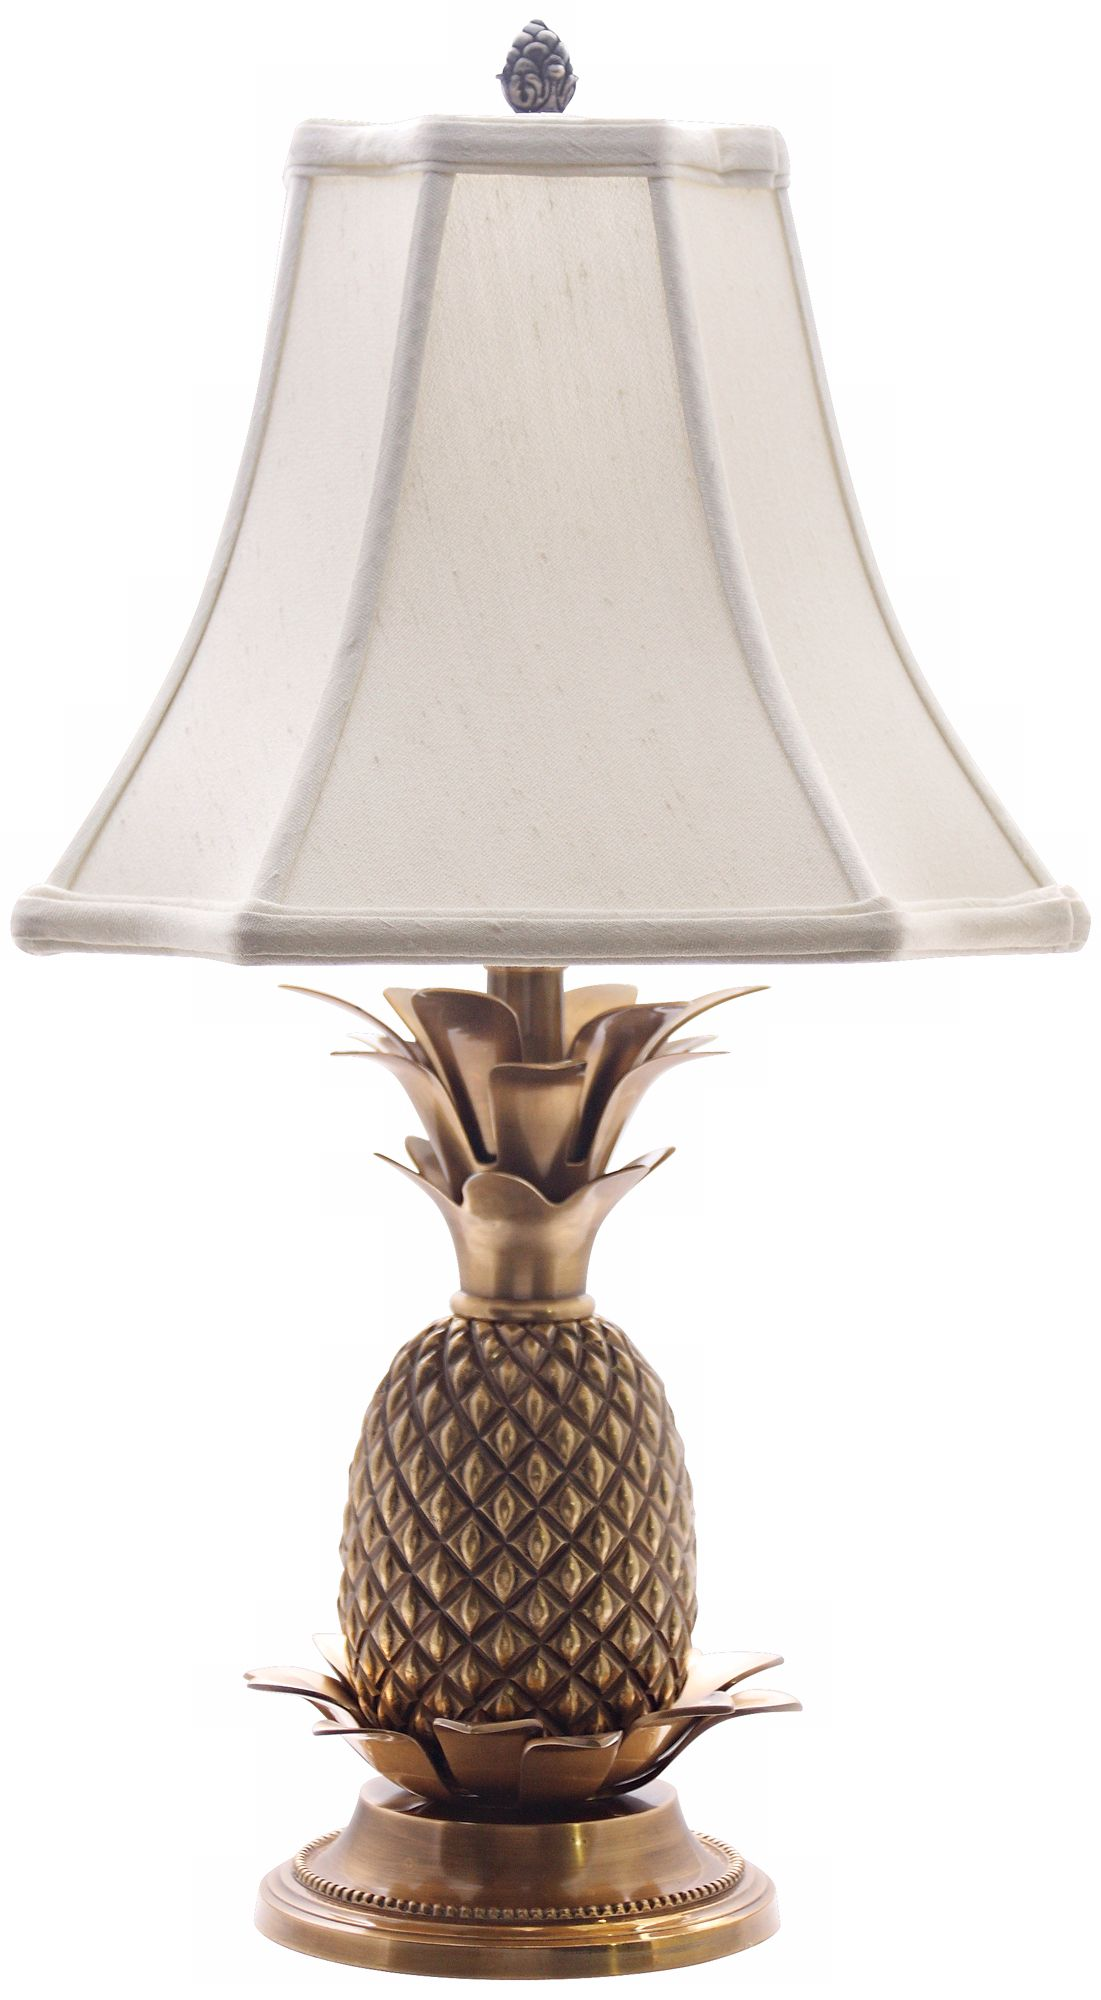 Ikea Floor Lamp Not Working ~ Antique brass white shade pineapple table lamp j8905 www